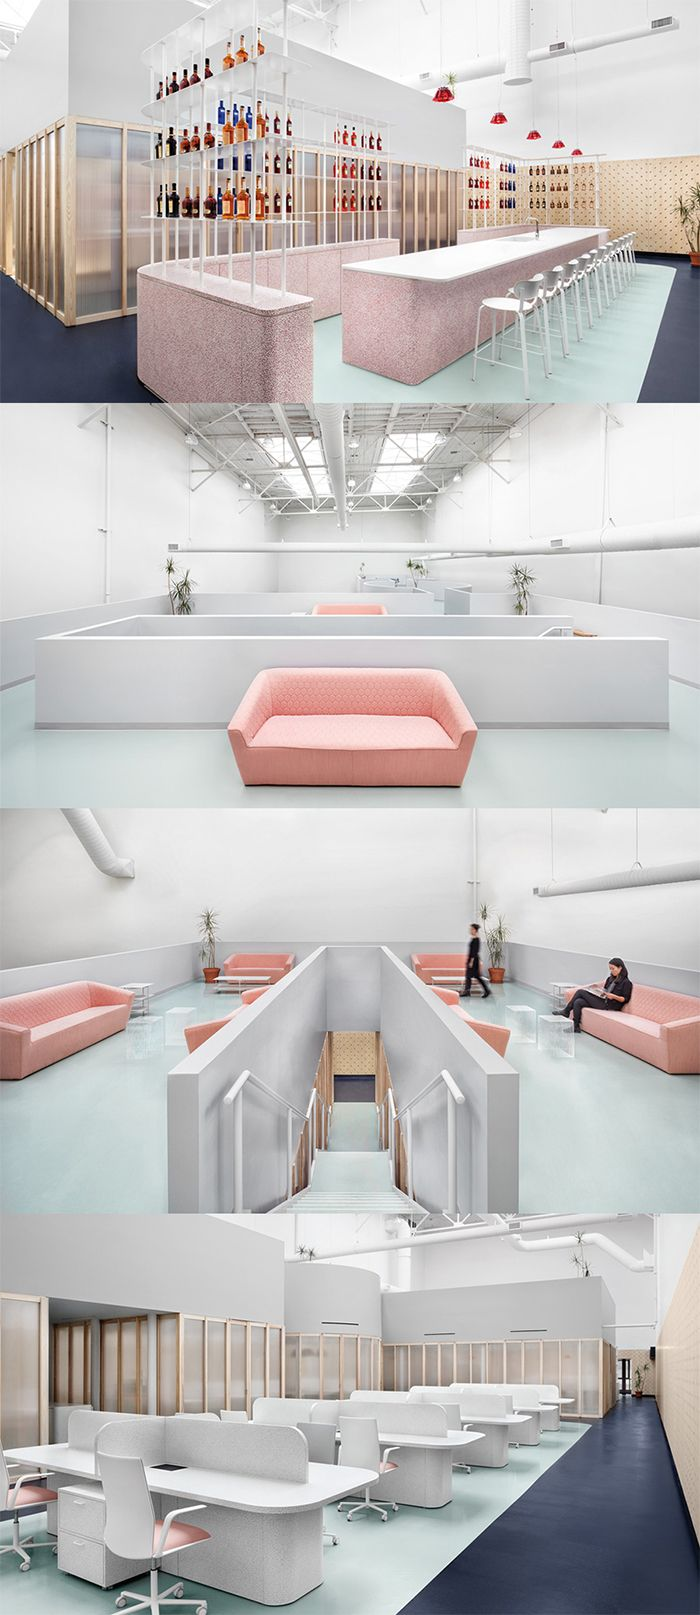 Campari Offices, Toronto – Canada http://thecoolhunter.net/campari-offices-toronto-canada/